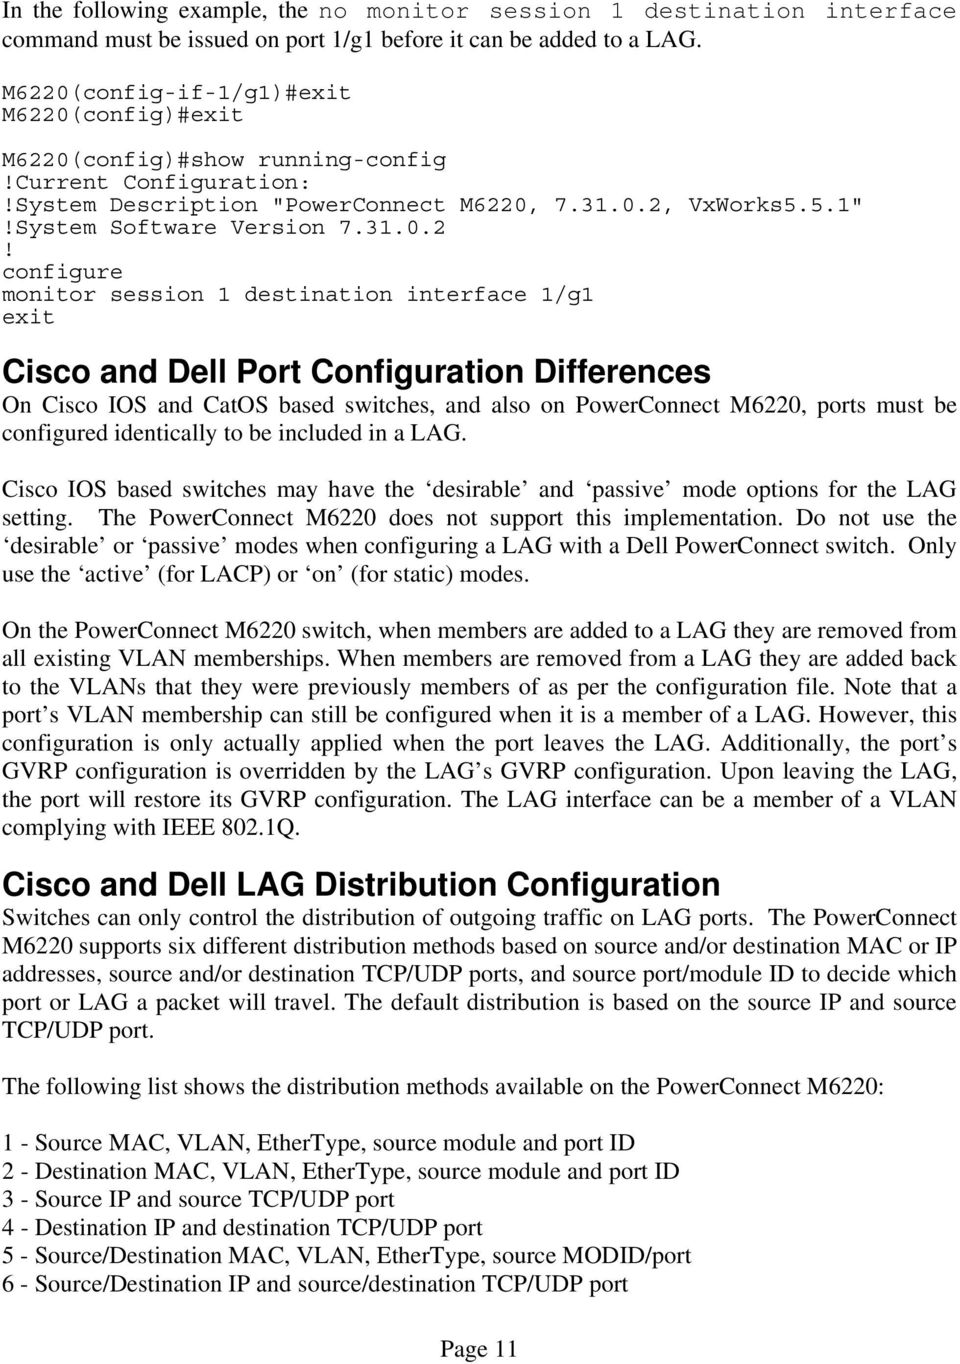 Link Aggregation Interoperability of the Dell PowerConnect